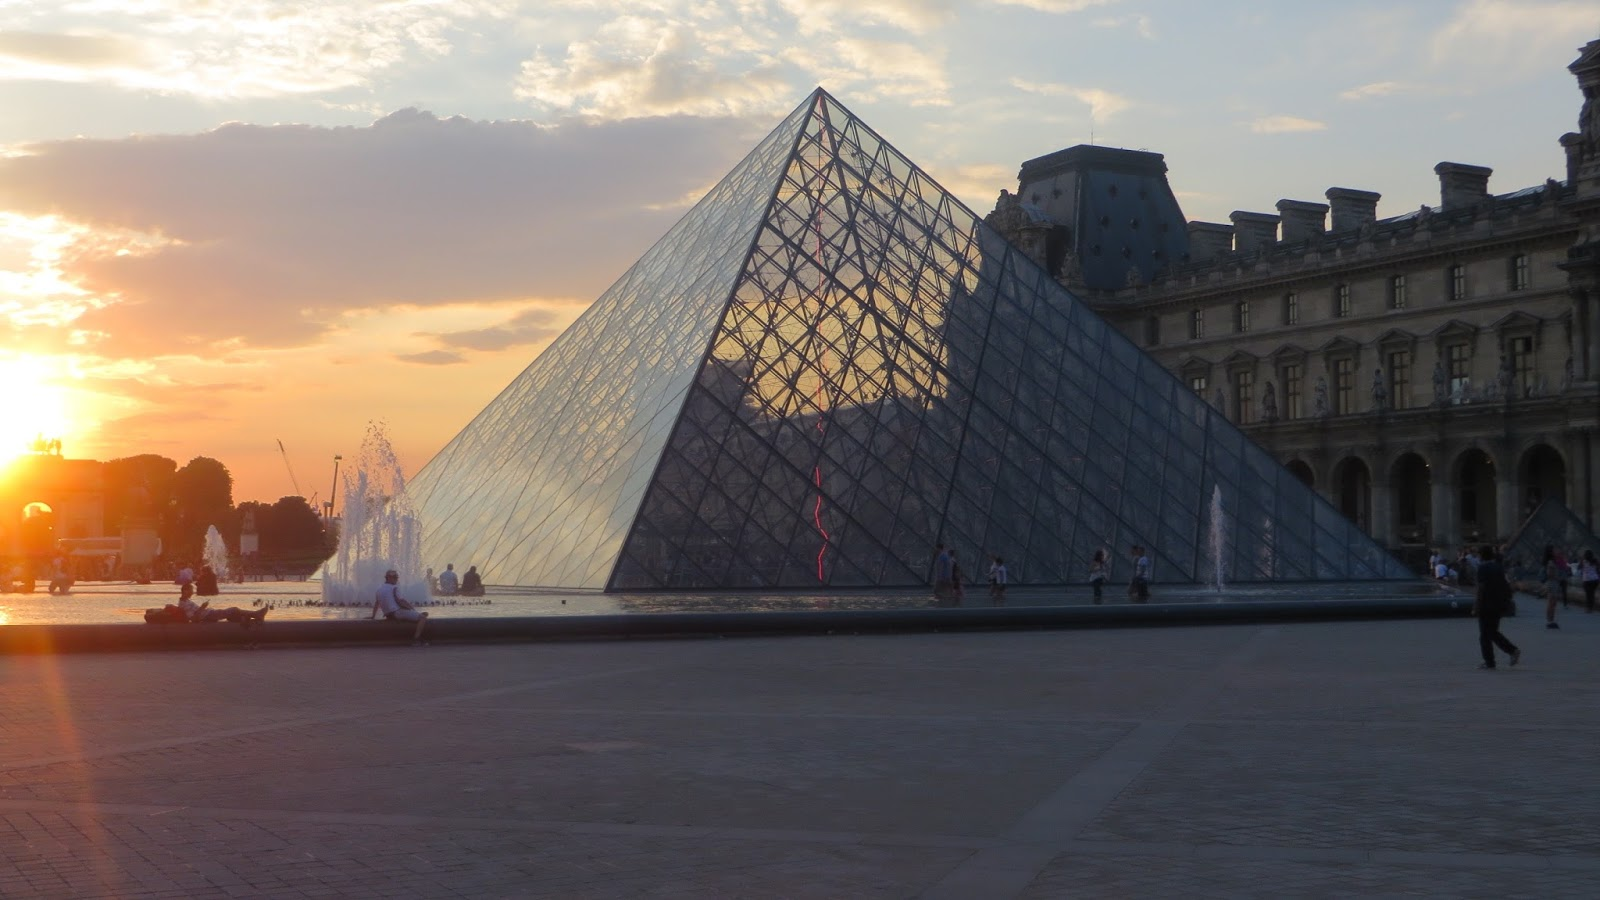 Glass Pyramid Entrance of the Louvre